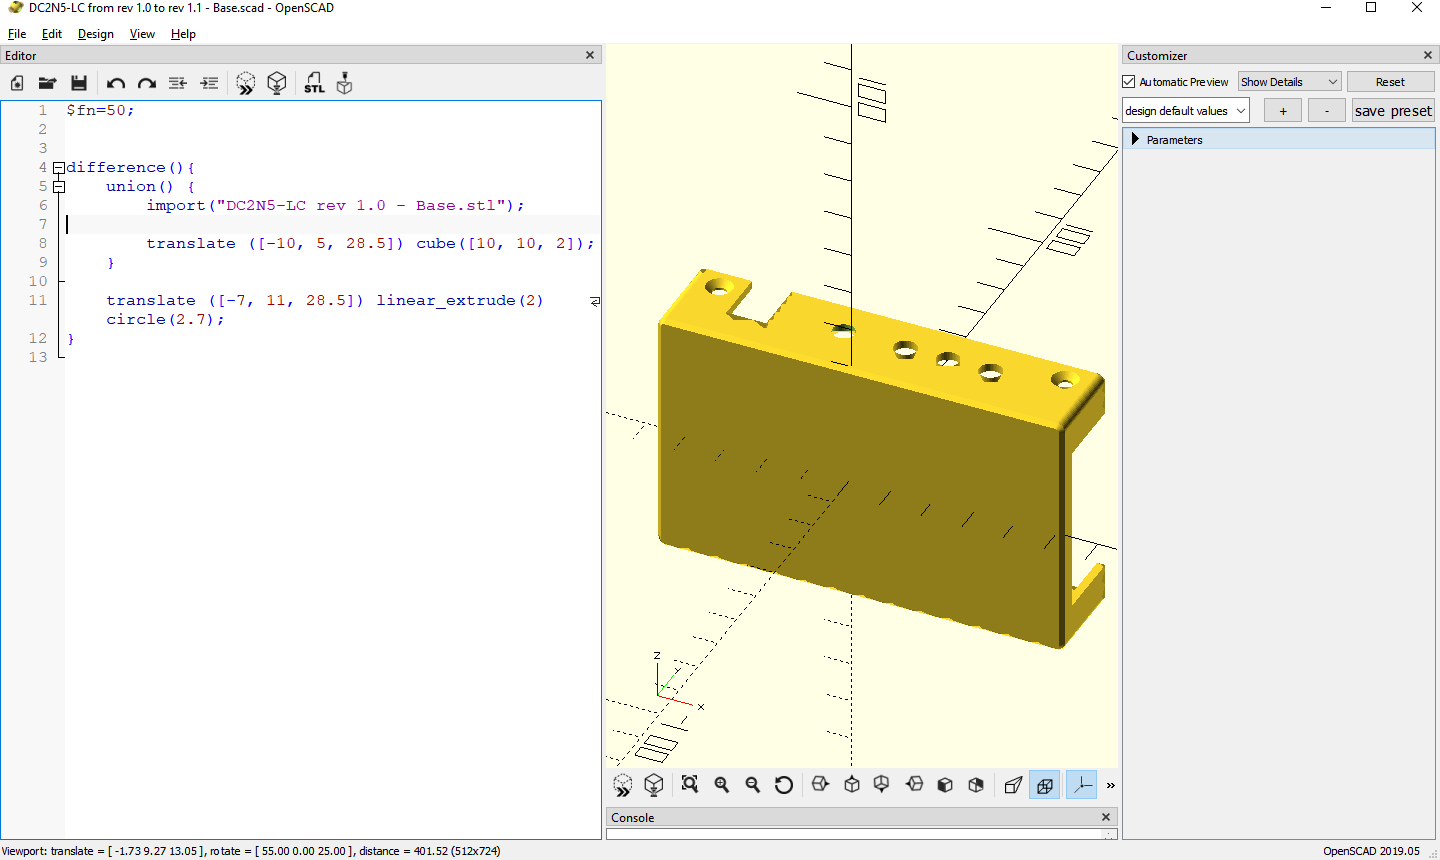 DC2N5-LC OpenSCAD snippet to adapt to PCB rev 1.1 by Luigi Di Fraia